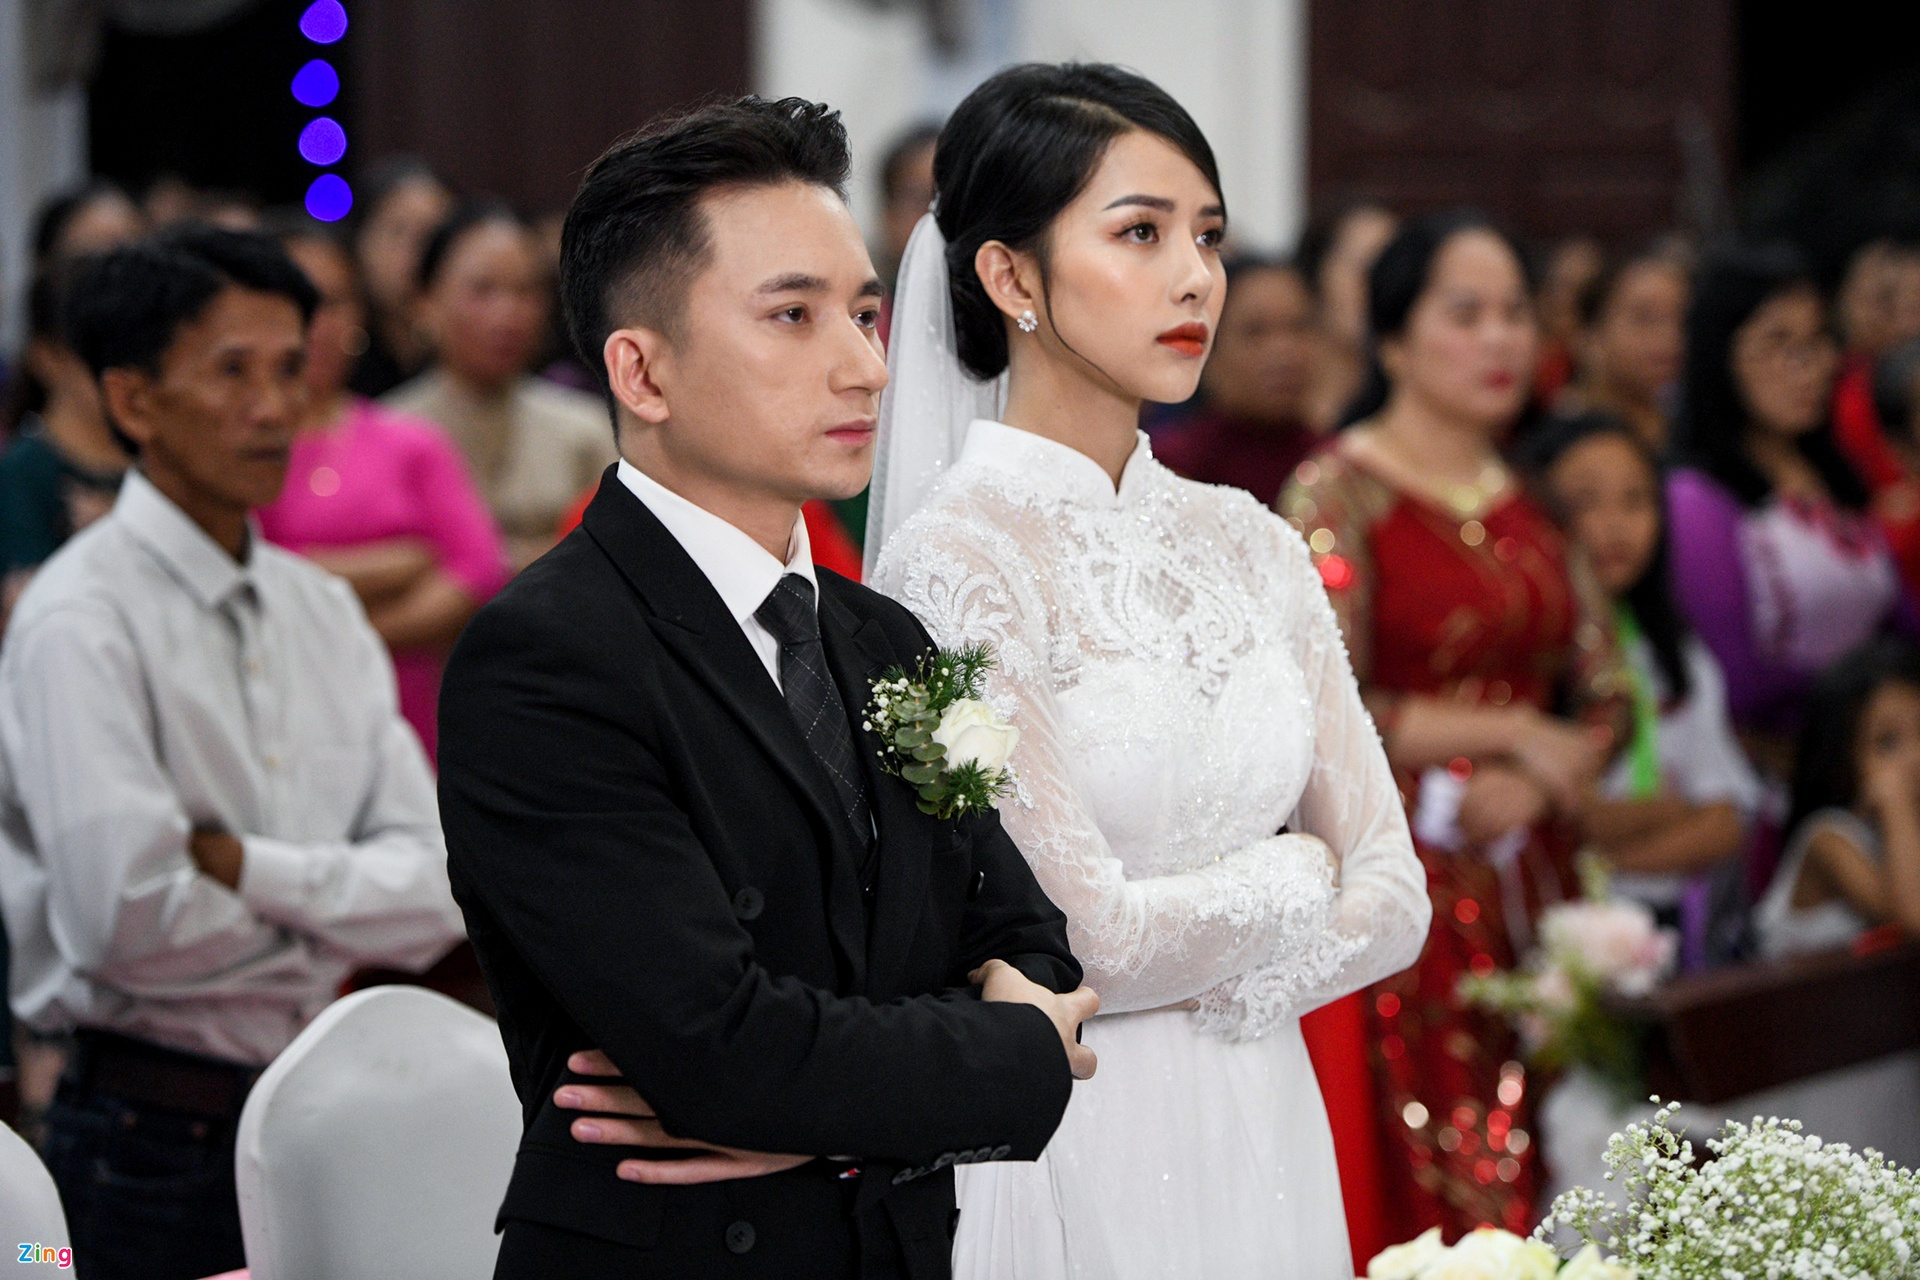 le cuoi phan manh quynh anh 2